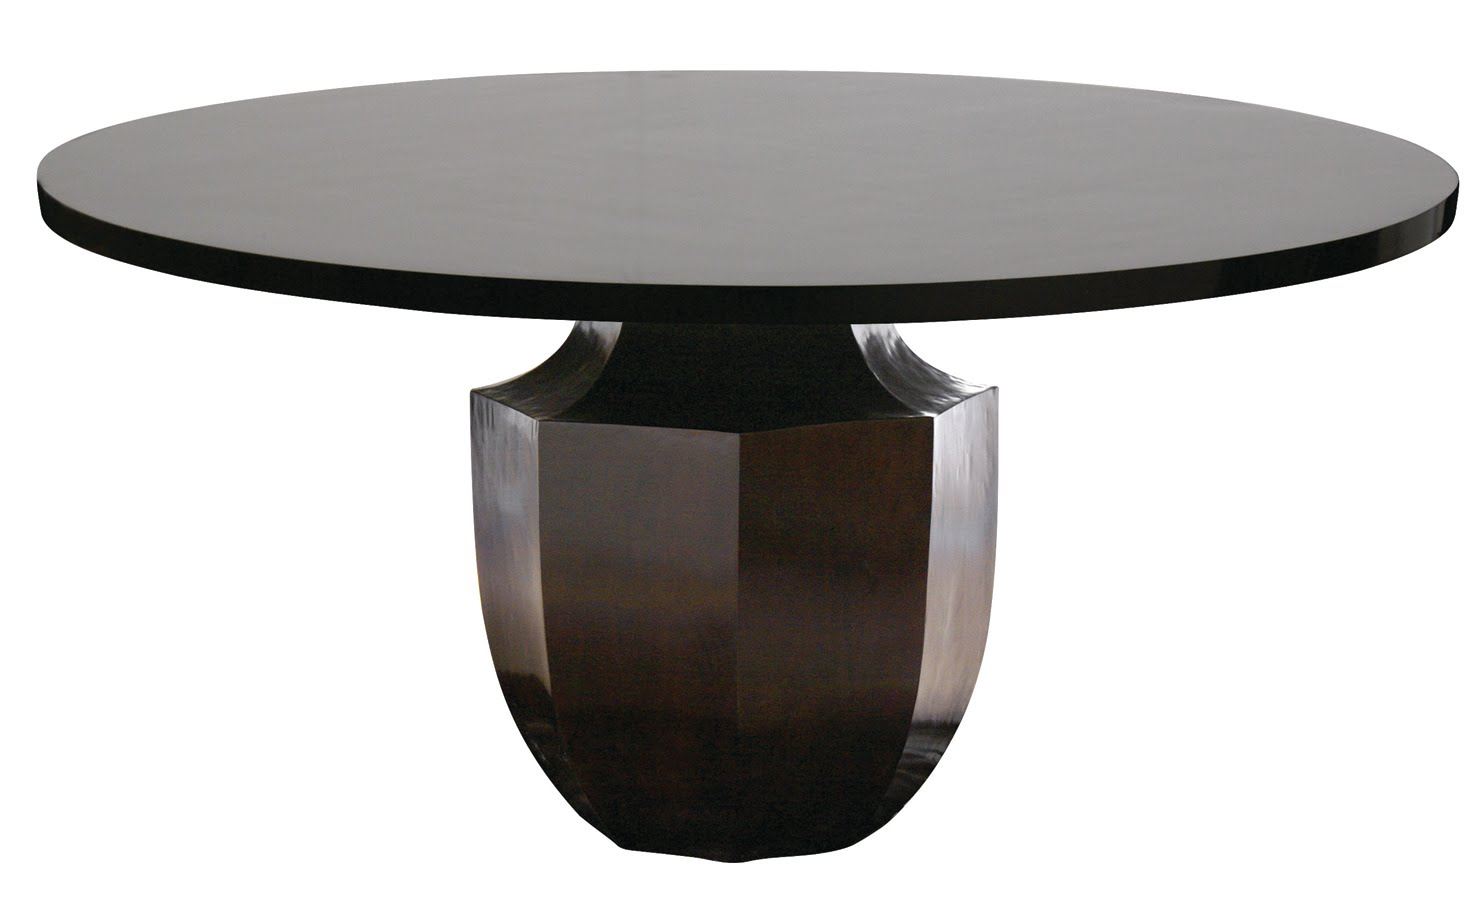 Prairie perch my top 5 round dining tables for Circle table